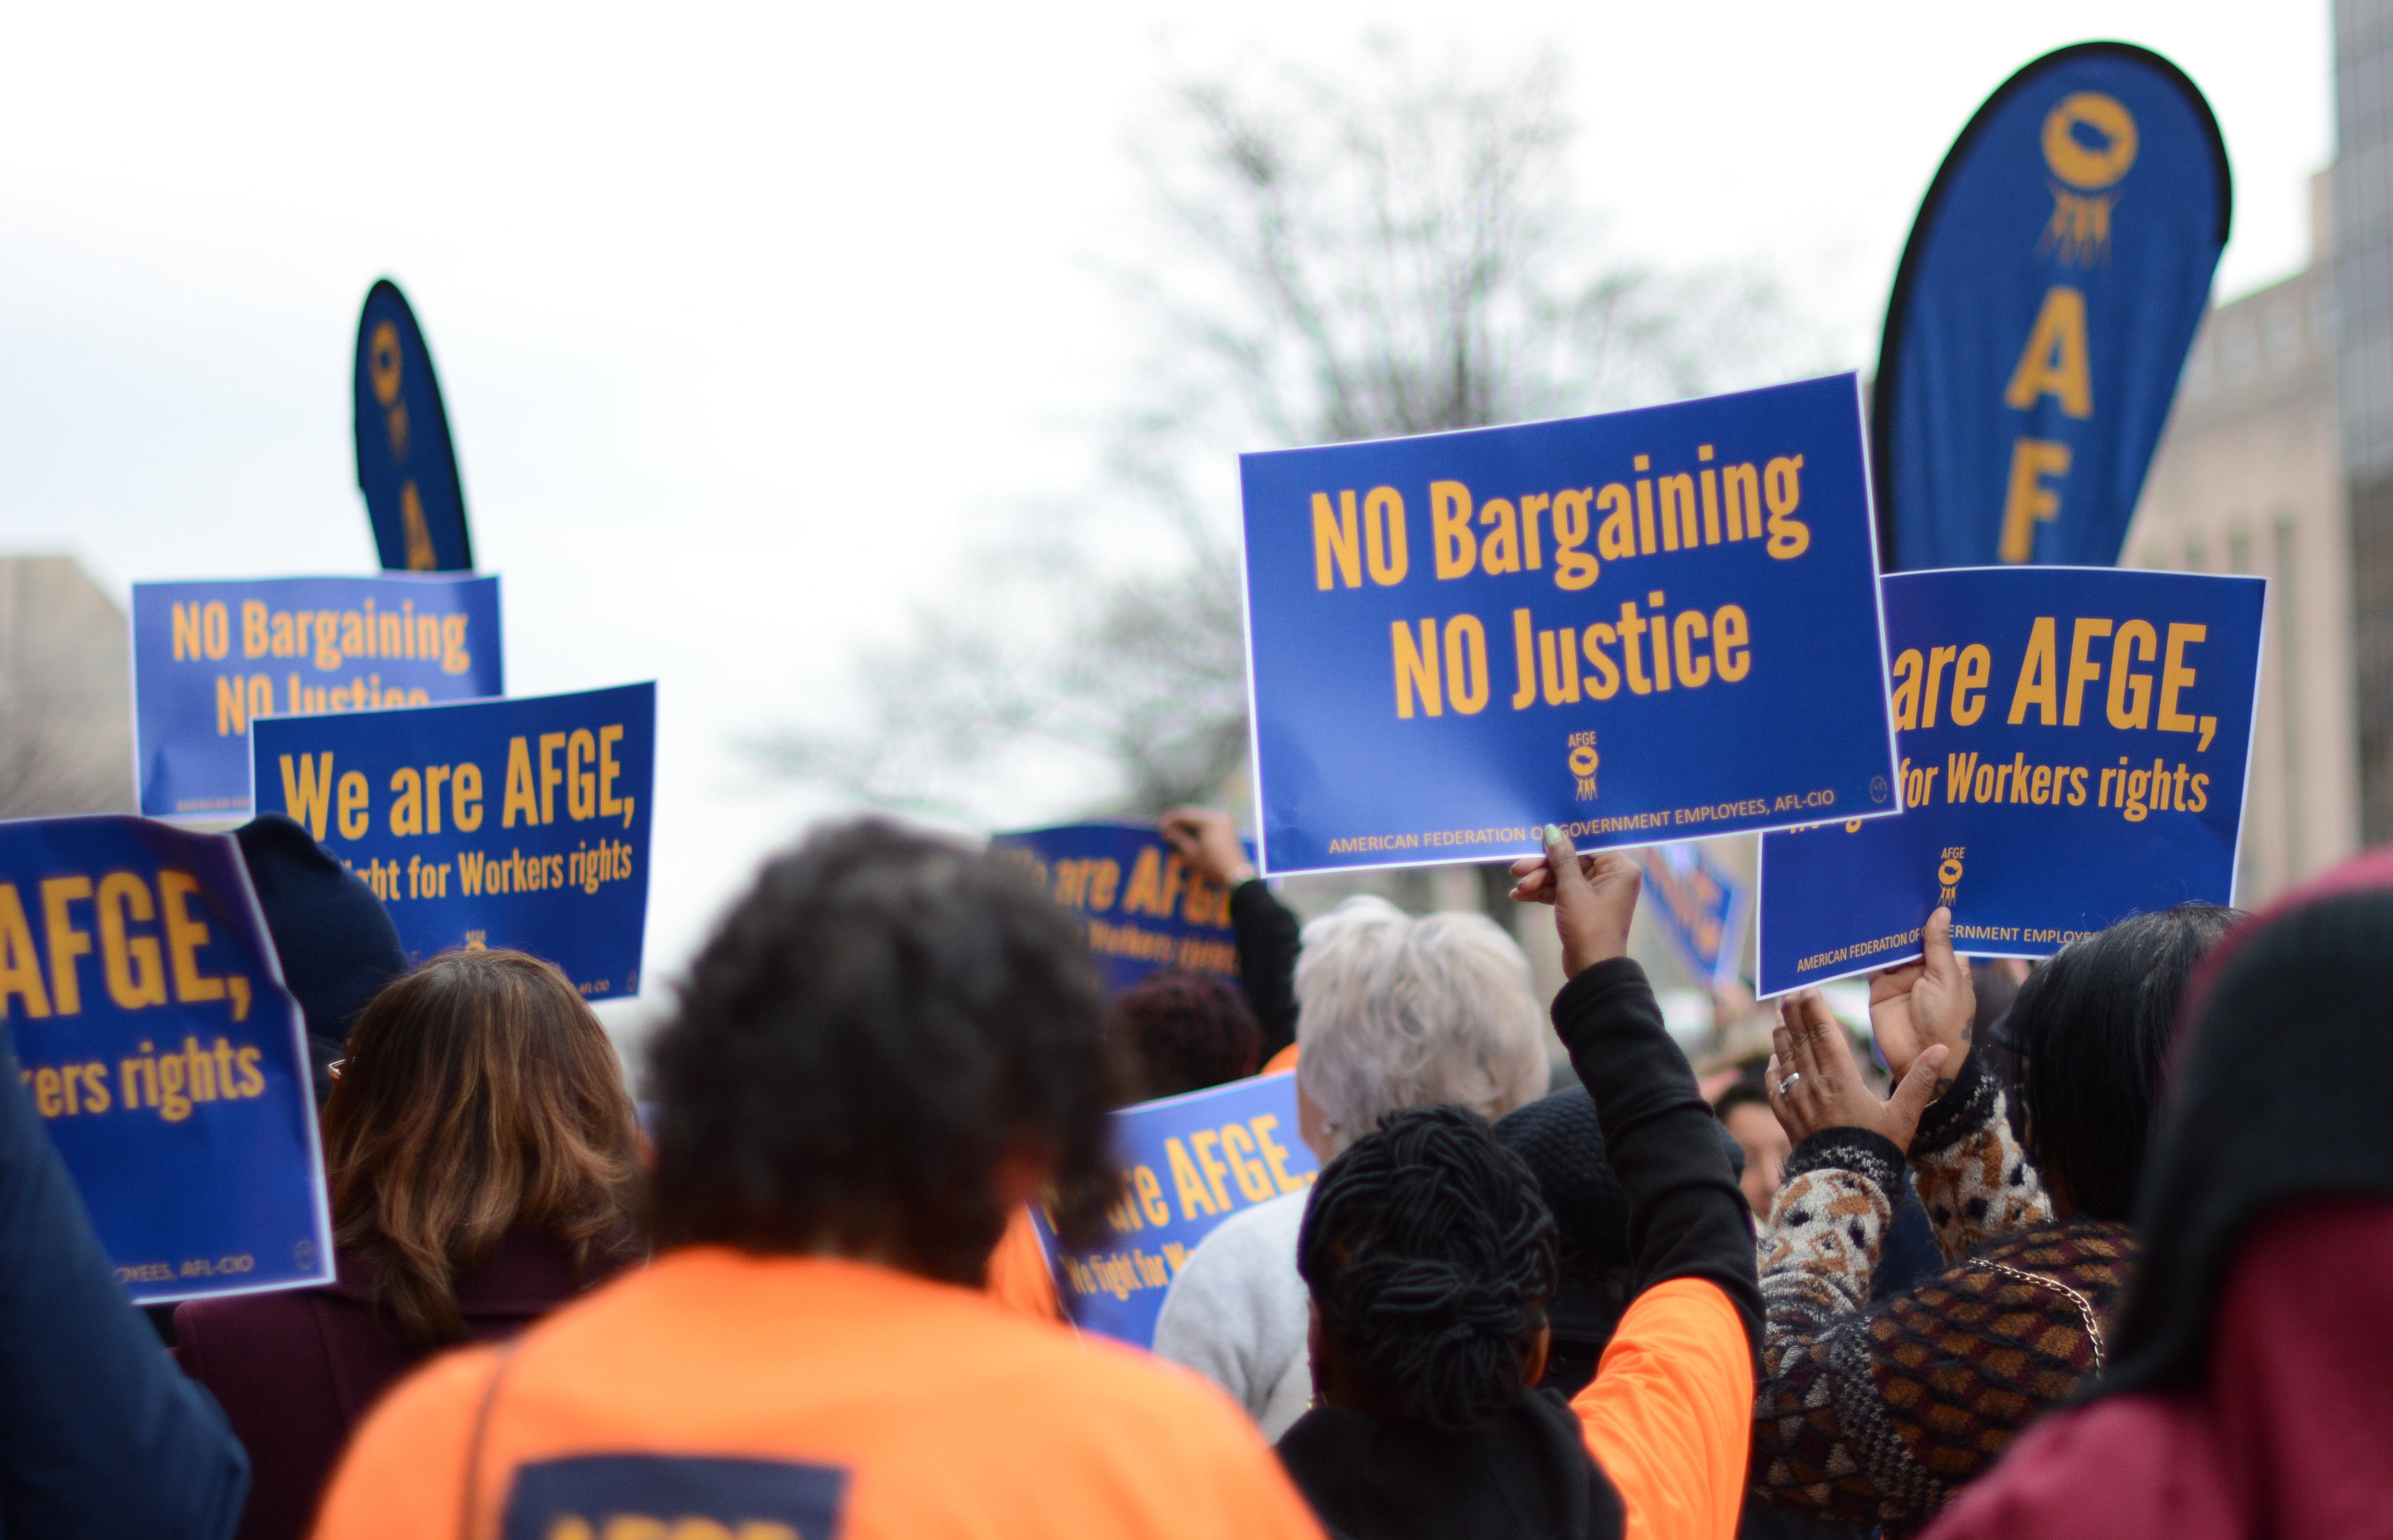 The union representing nearly 4,000 Department of Education employees nationwide, the American Federation of Government Employees, is echoing a call from three U.S. Senators for the department to return to the bargaining table and negotiate a new contract that does not violate workers' rights.